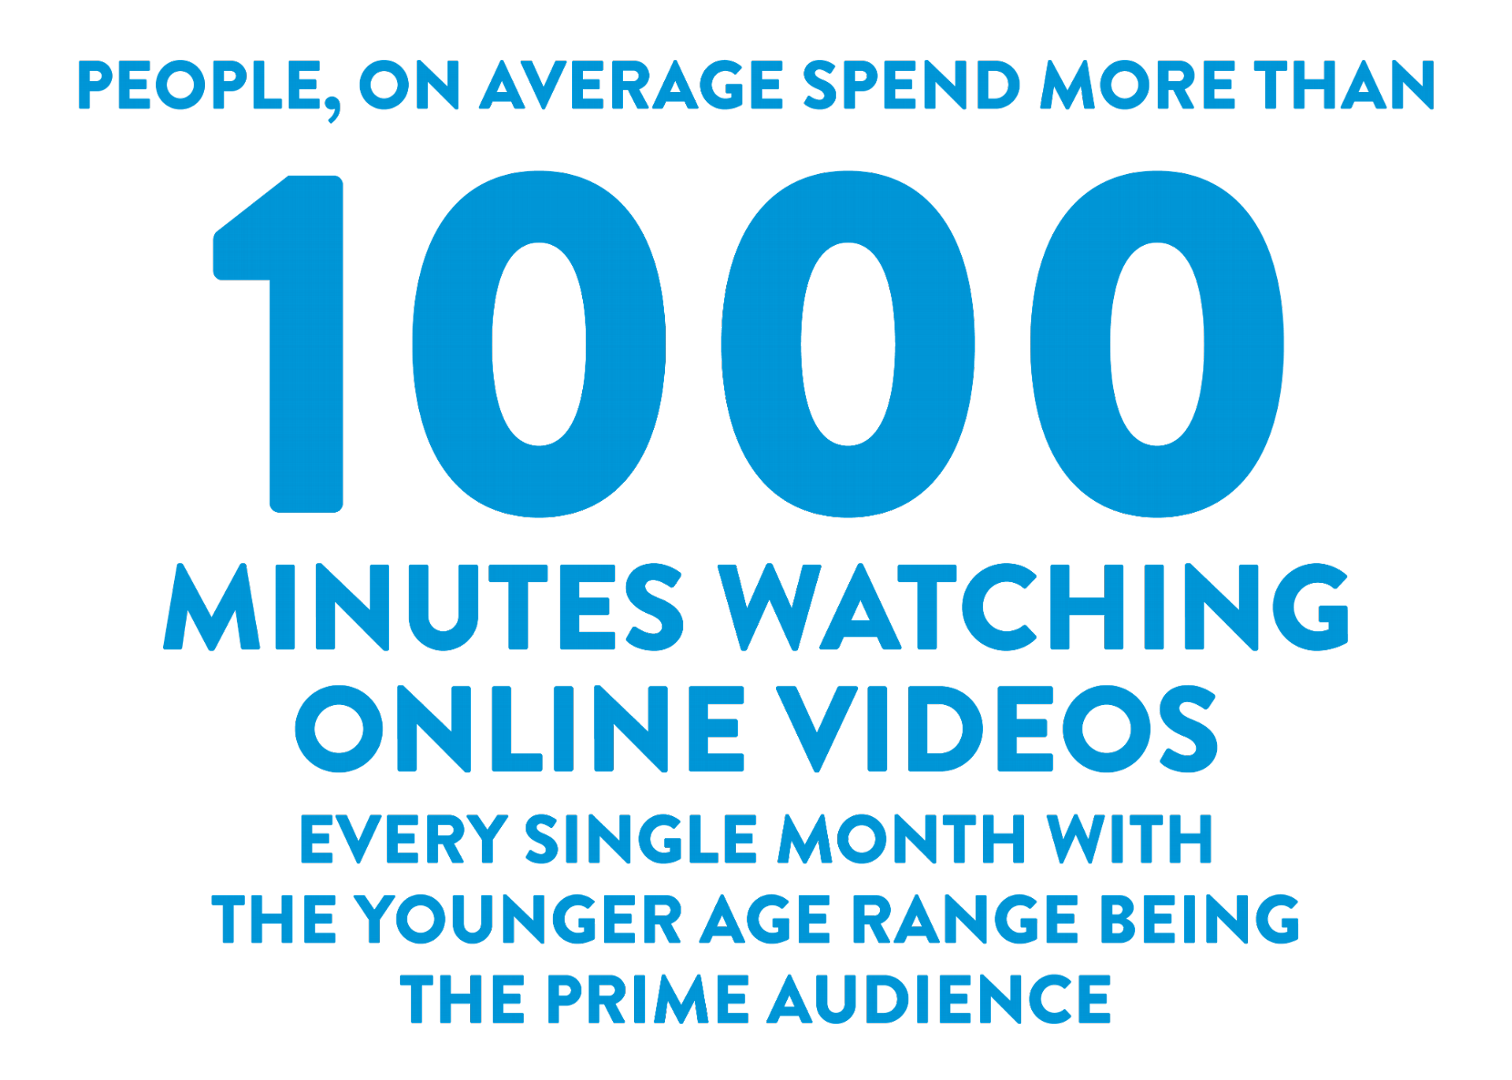 video_marketing_02.png